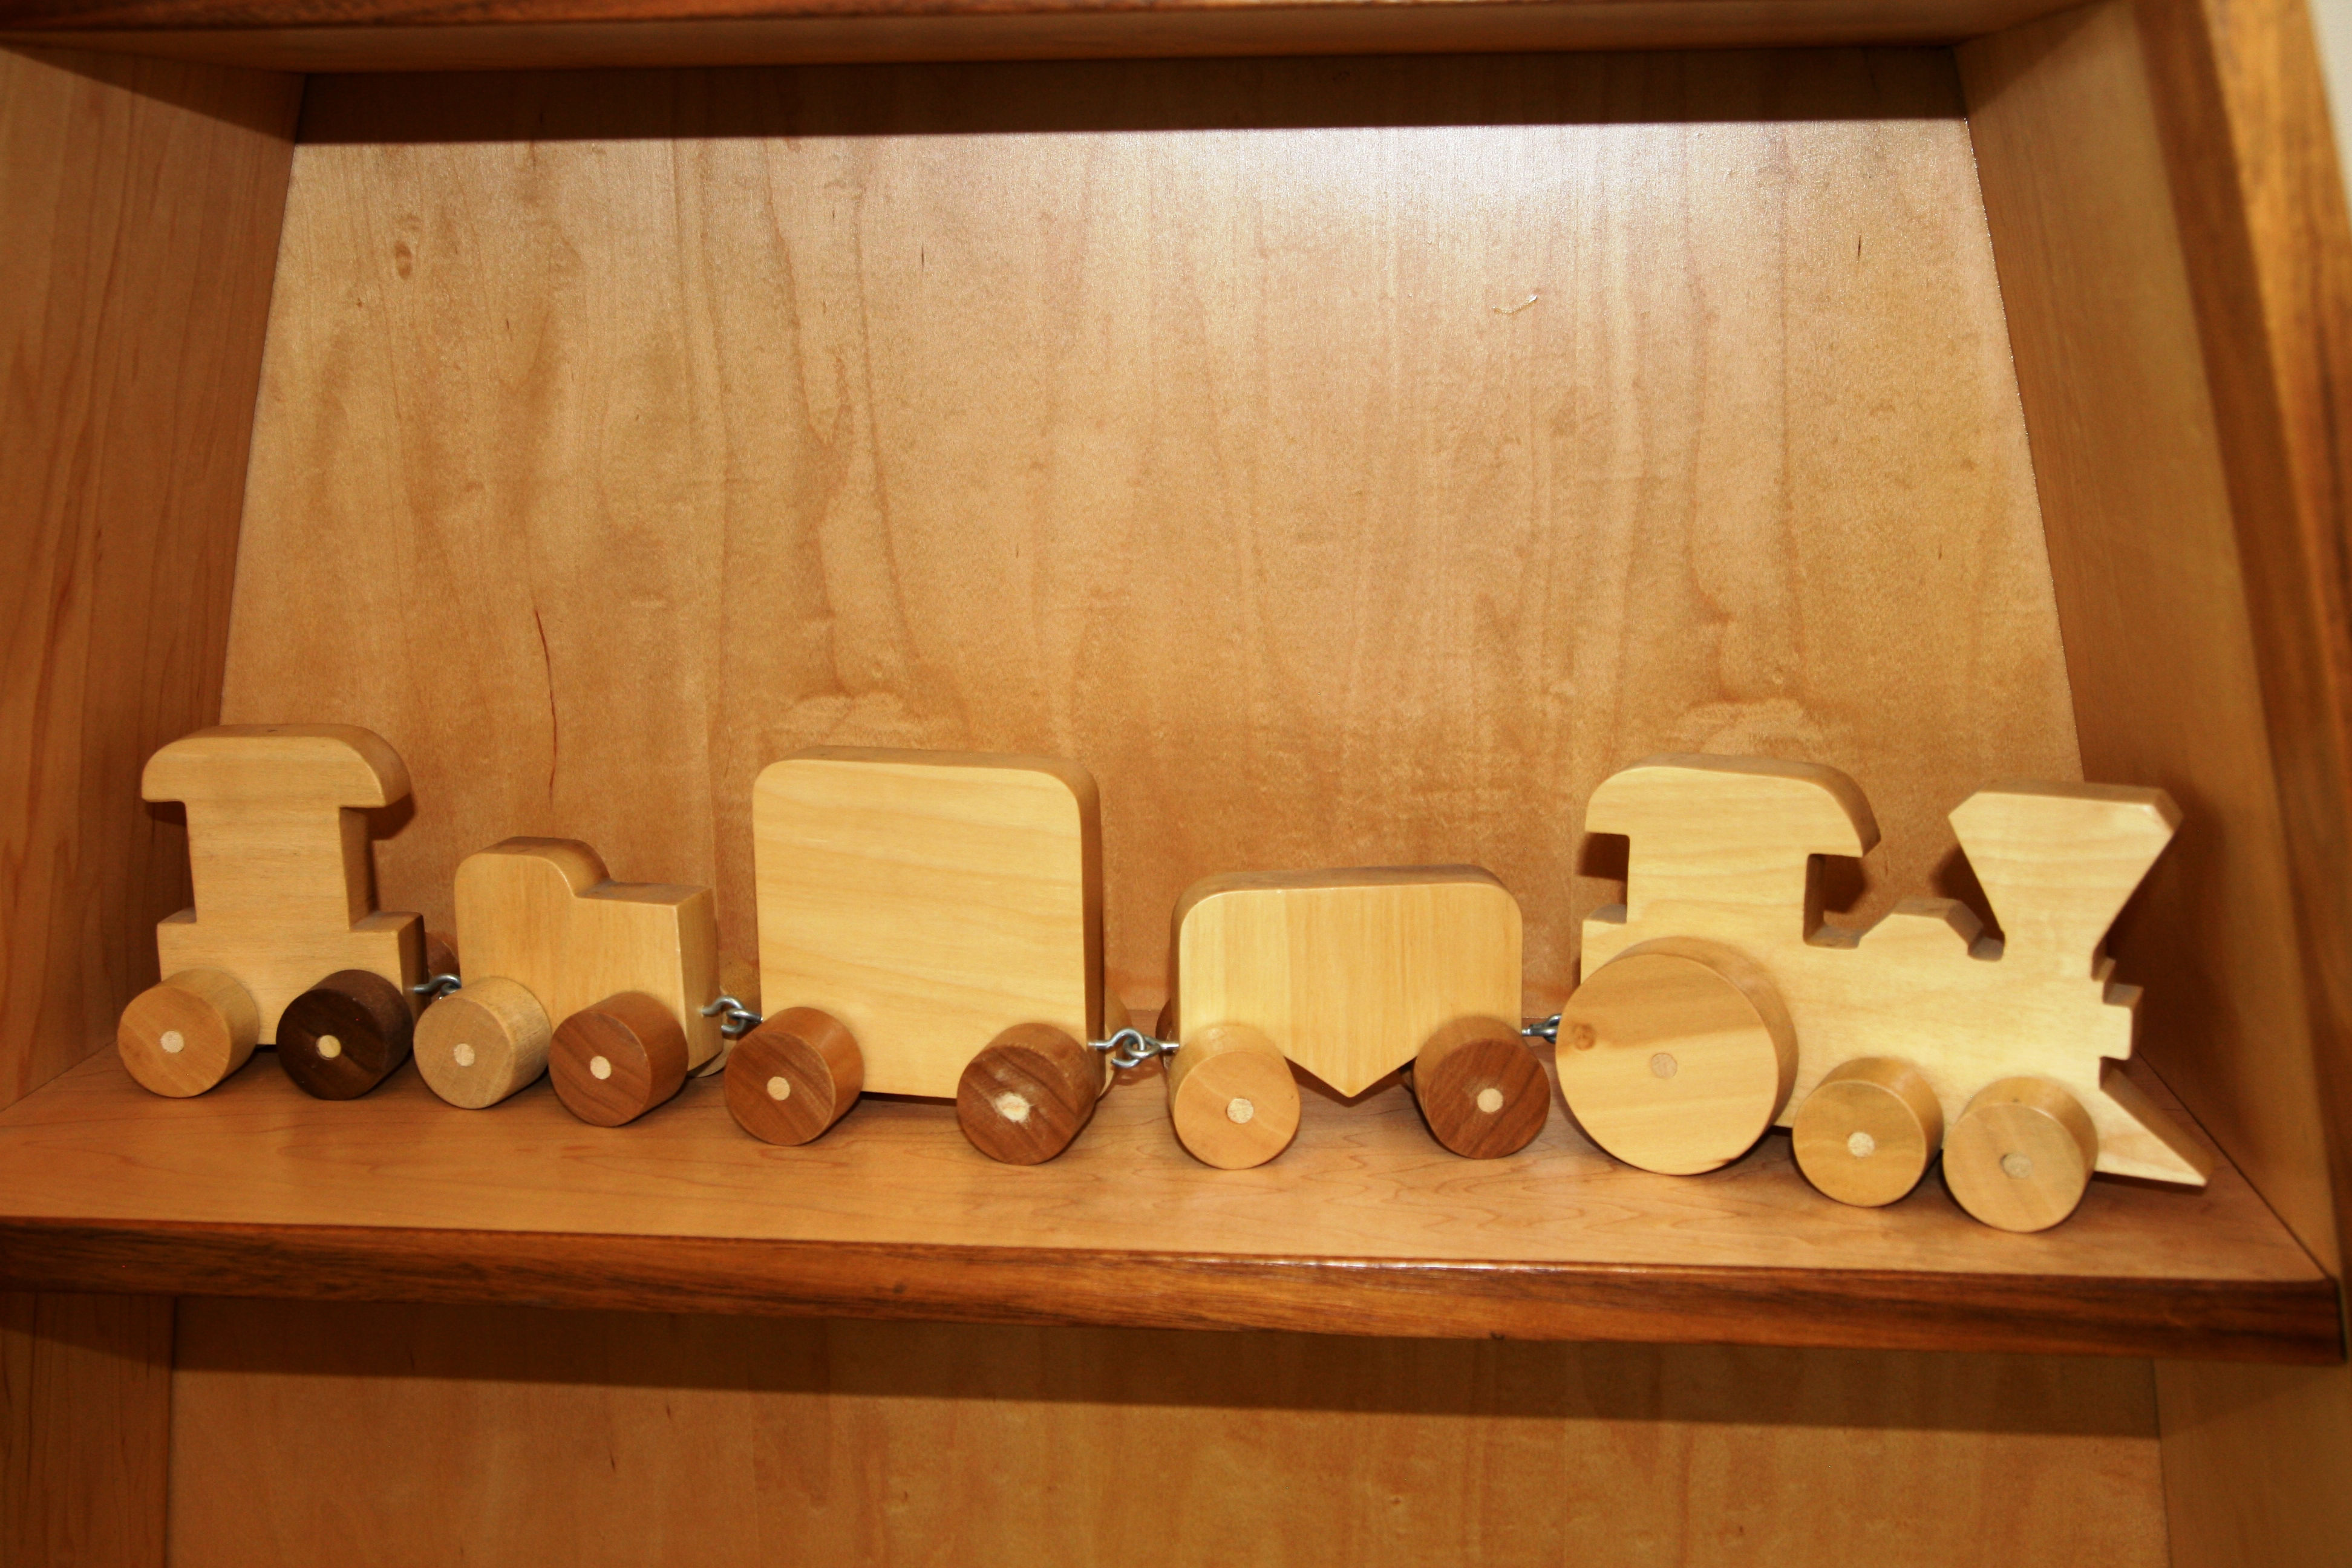 Image 4: Completed Woodworking Projects